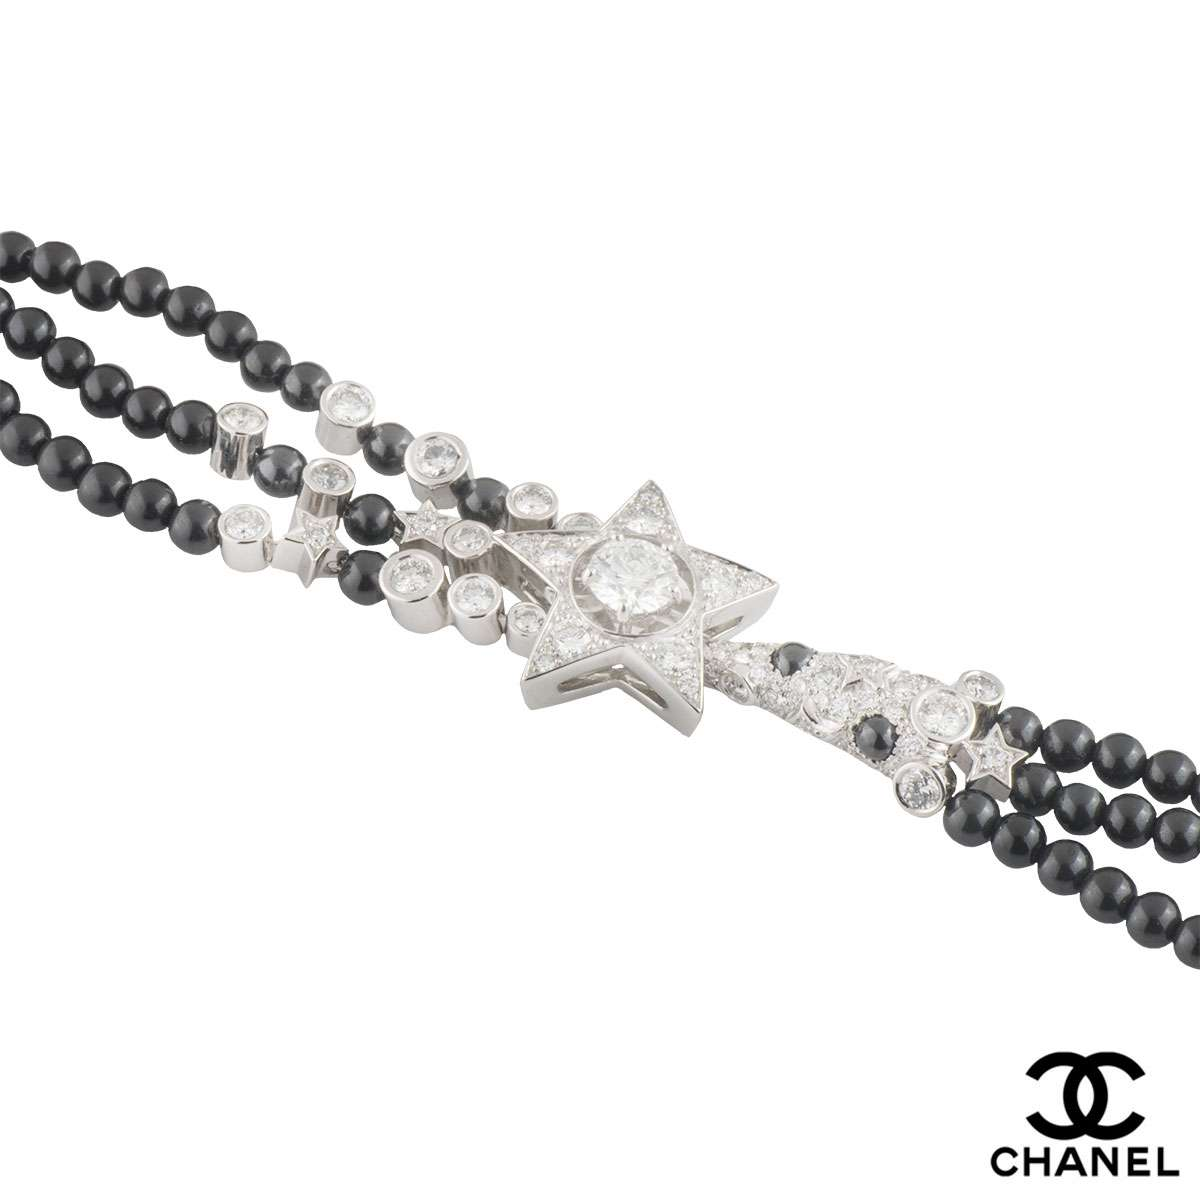 Chanel White Gold Diamond and Spinel Comete Bracelet